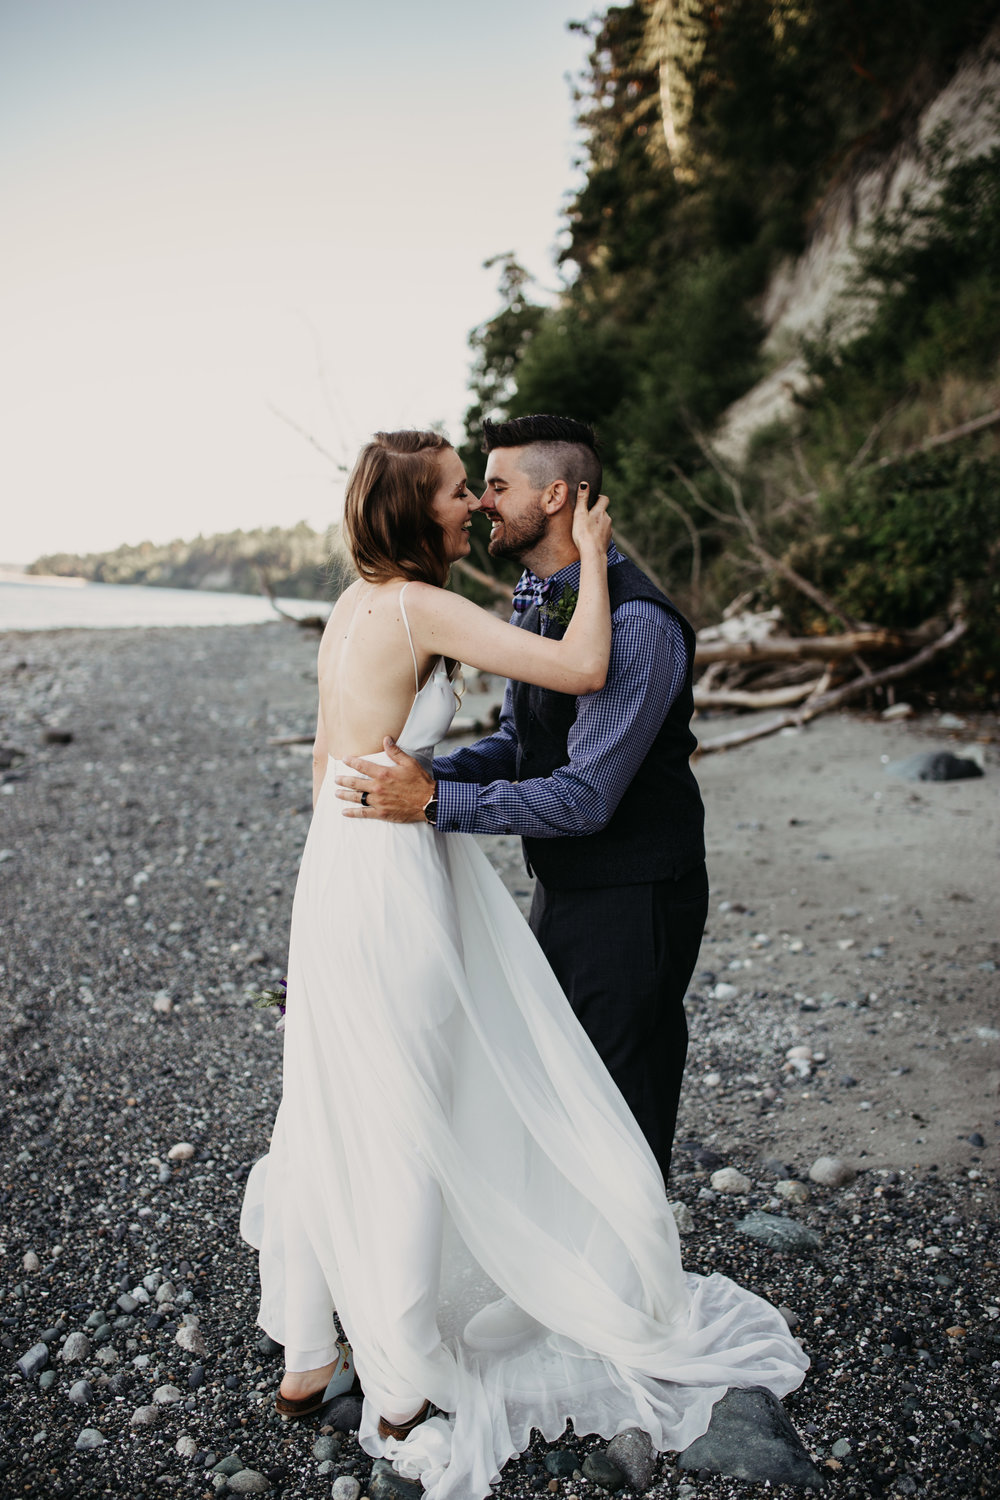 Matt & erica - Seattle Wedding